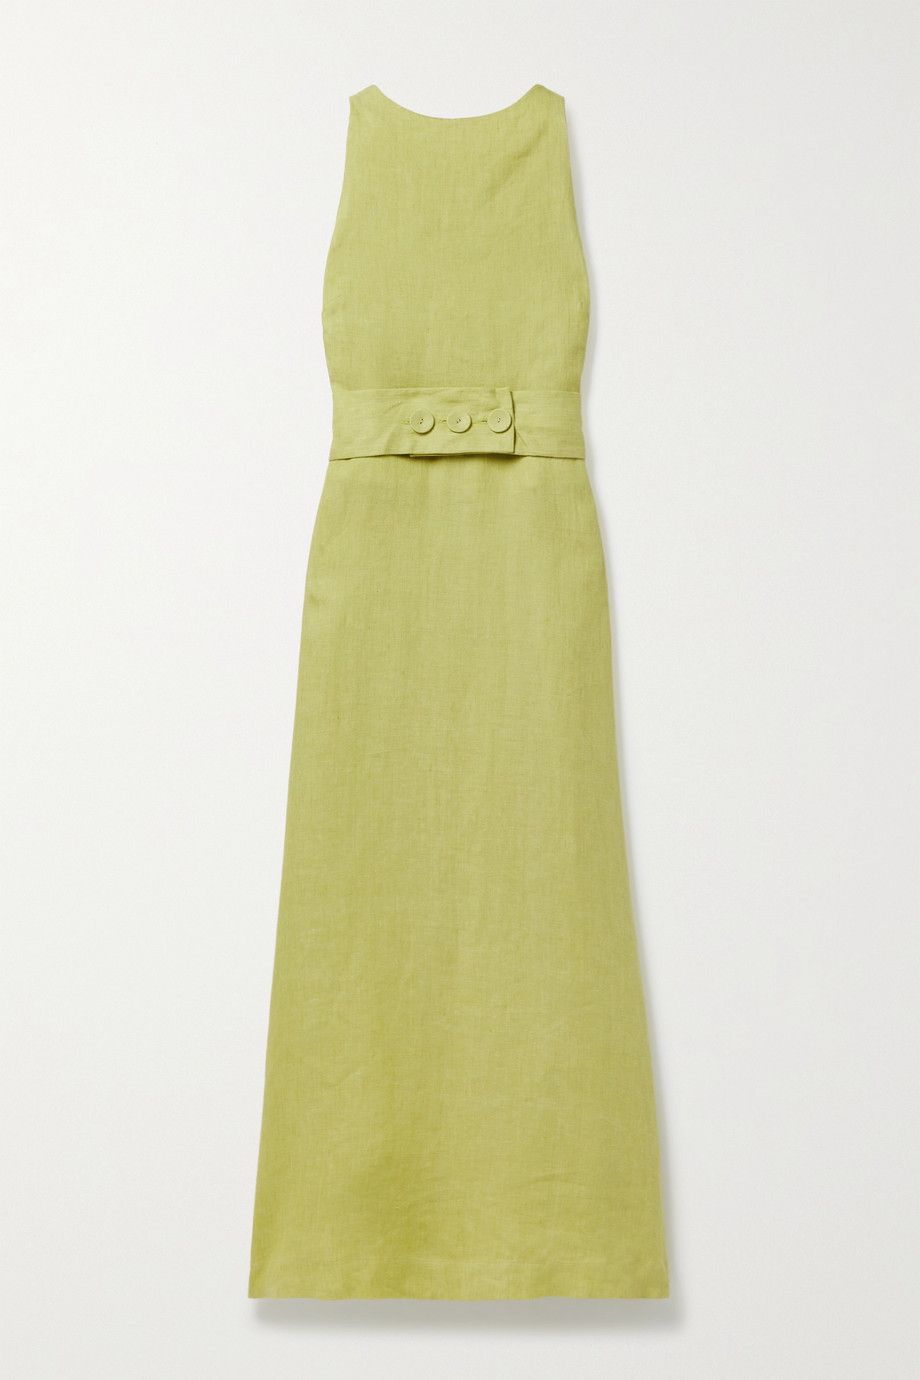 BONDI BORN Ava belted linen maxi dress